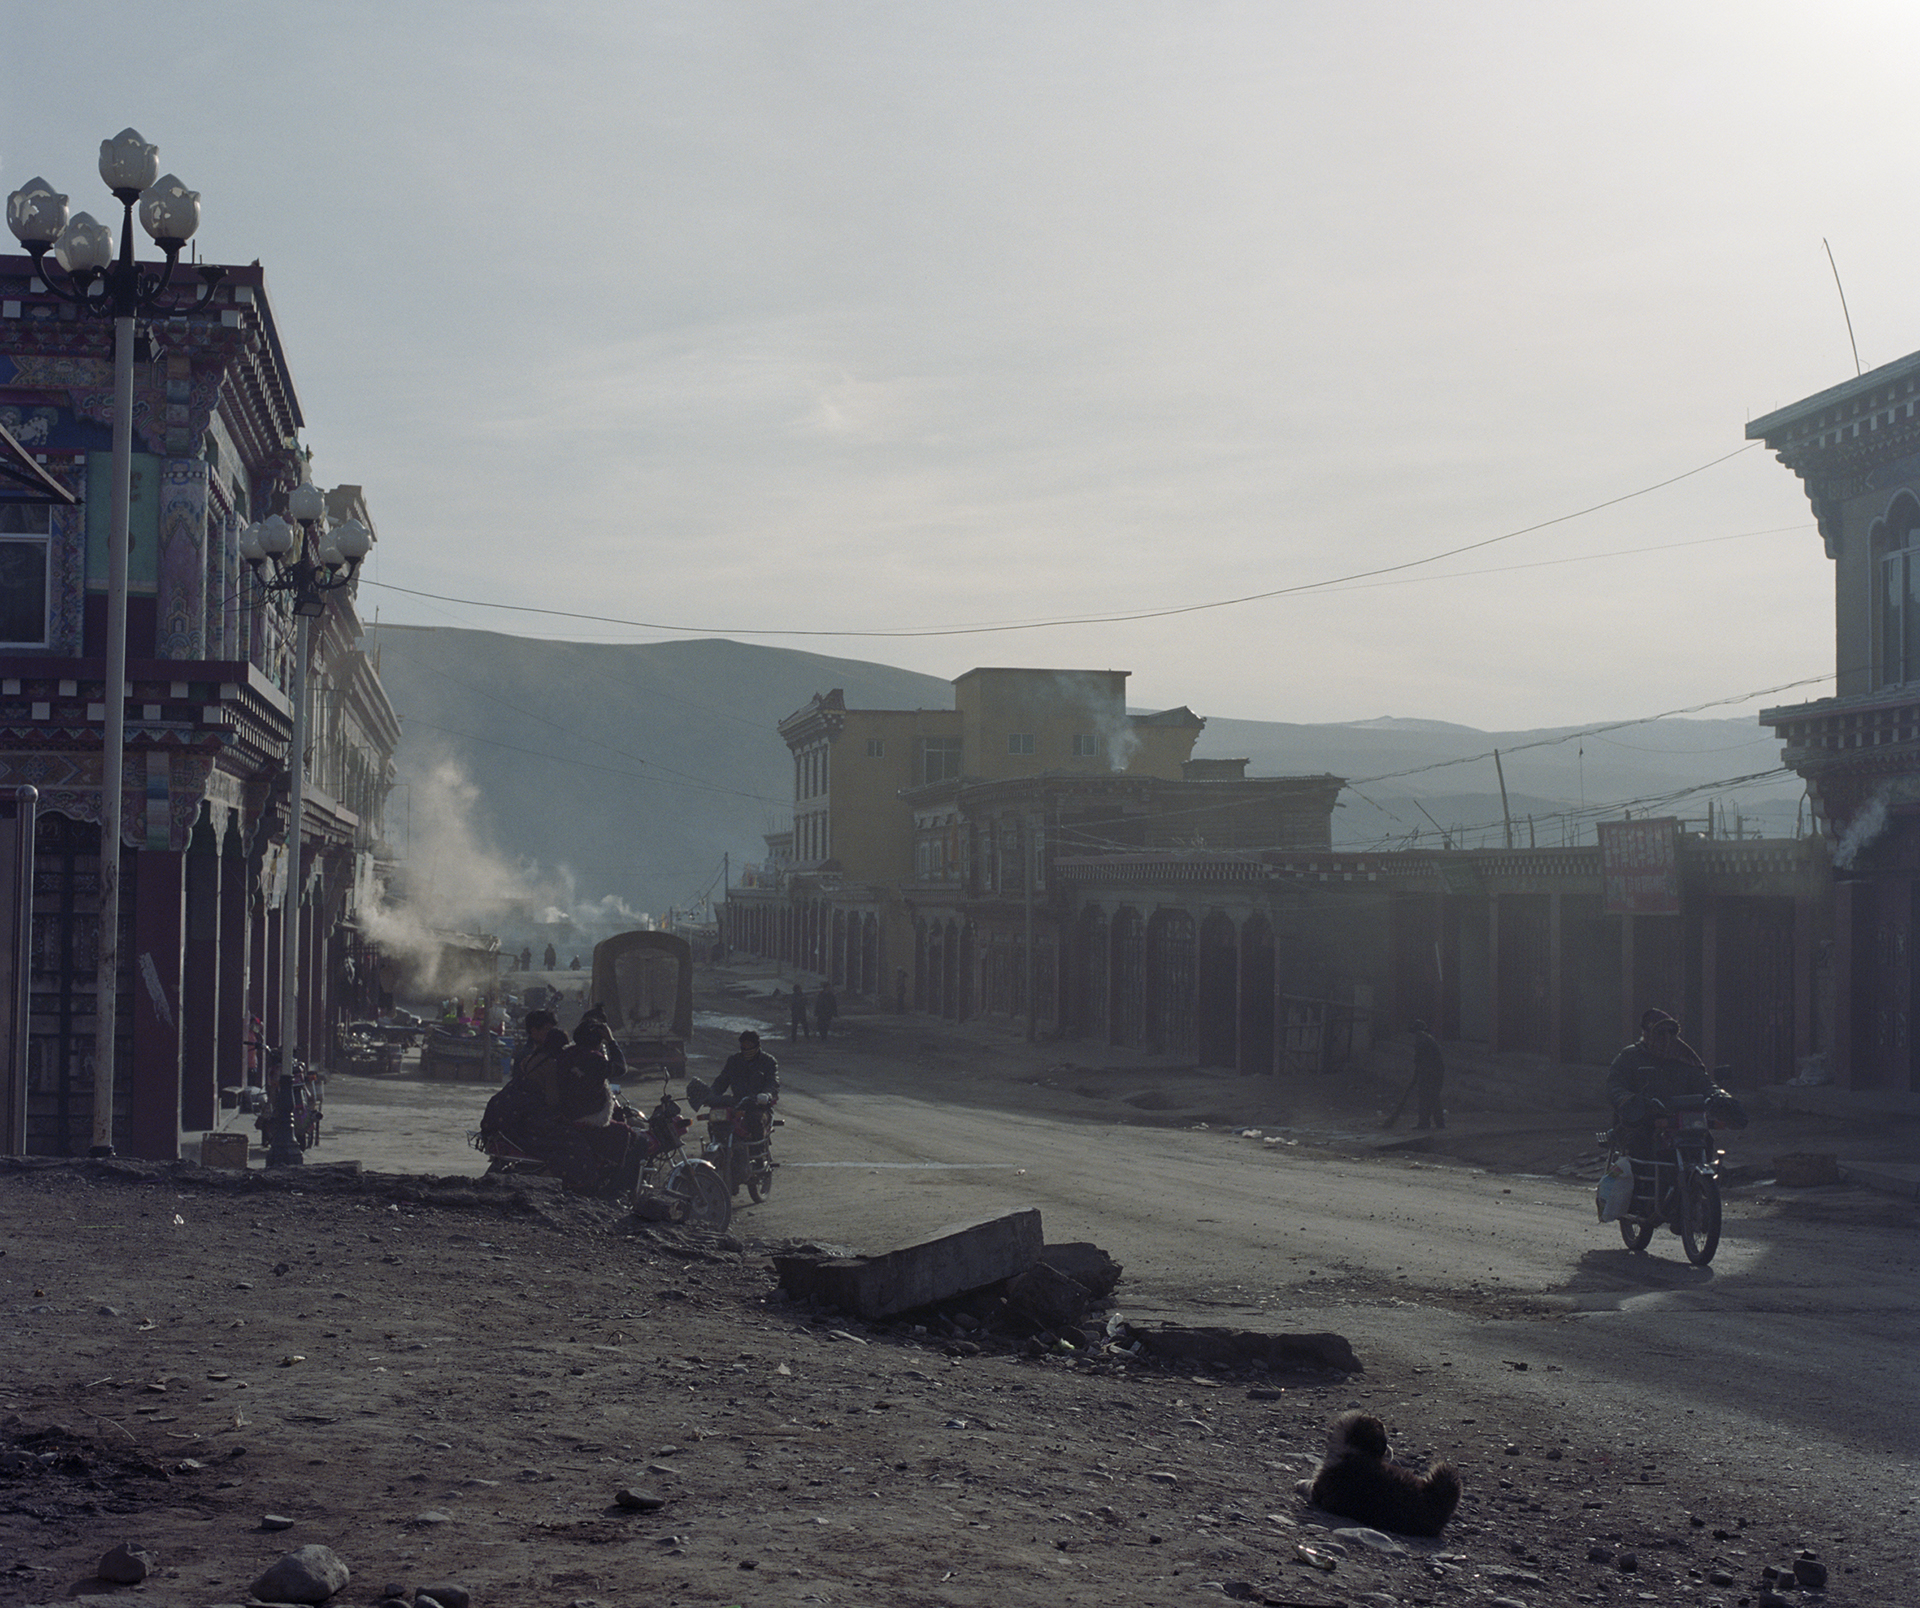 2010, Maniggango - main street in the early morning light. It is freezing cold.